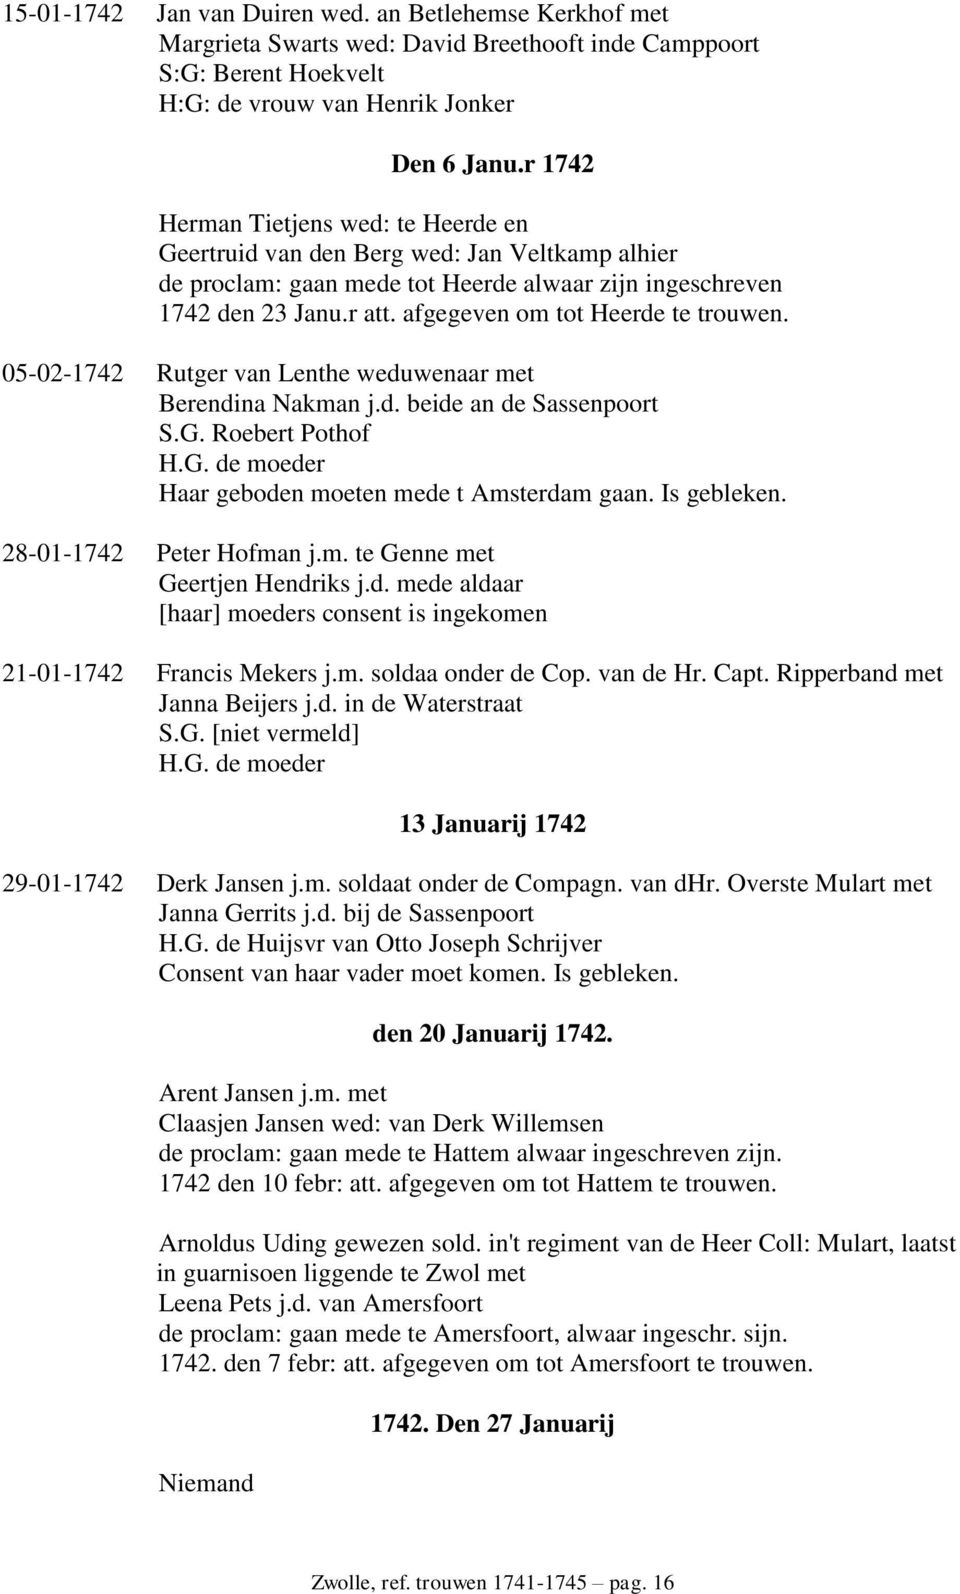 Zwolle transcriptie ref trouwen pdf for Weideman den ham